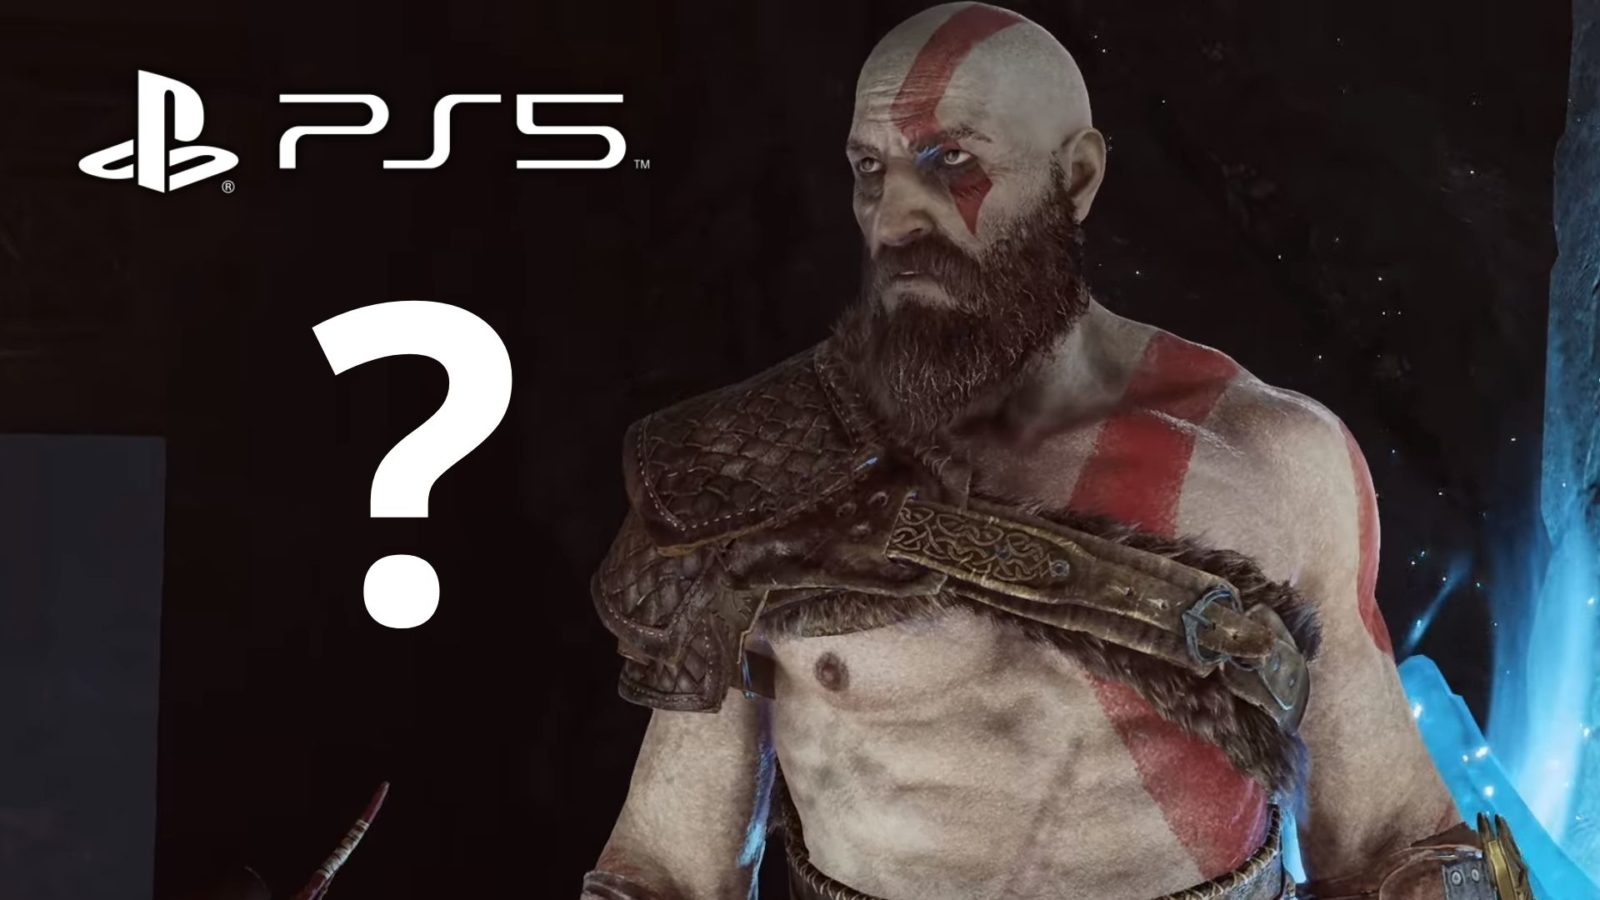 kratos in god of war and PS5 logo